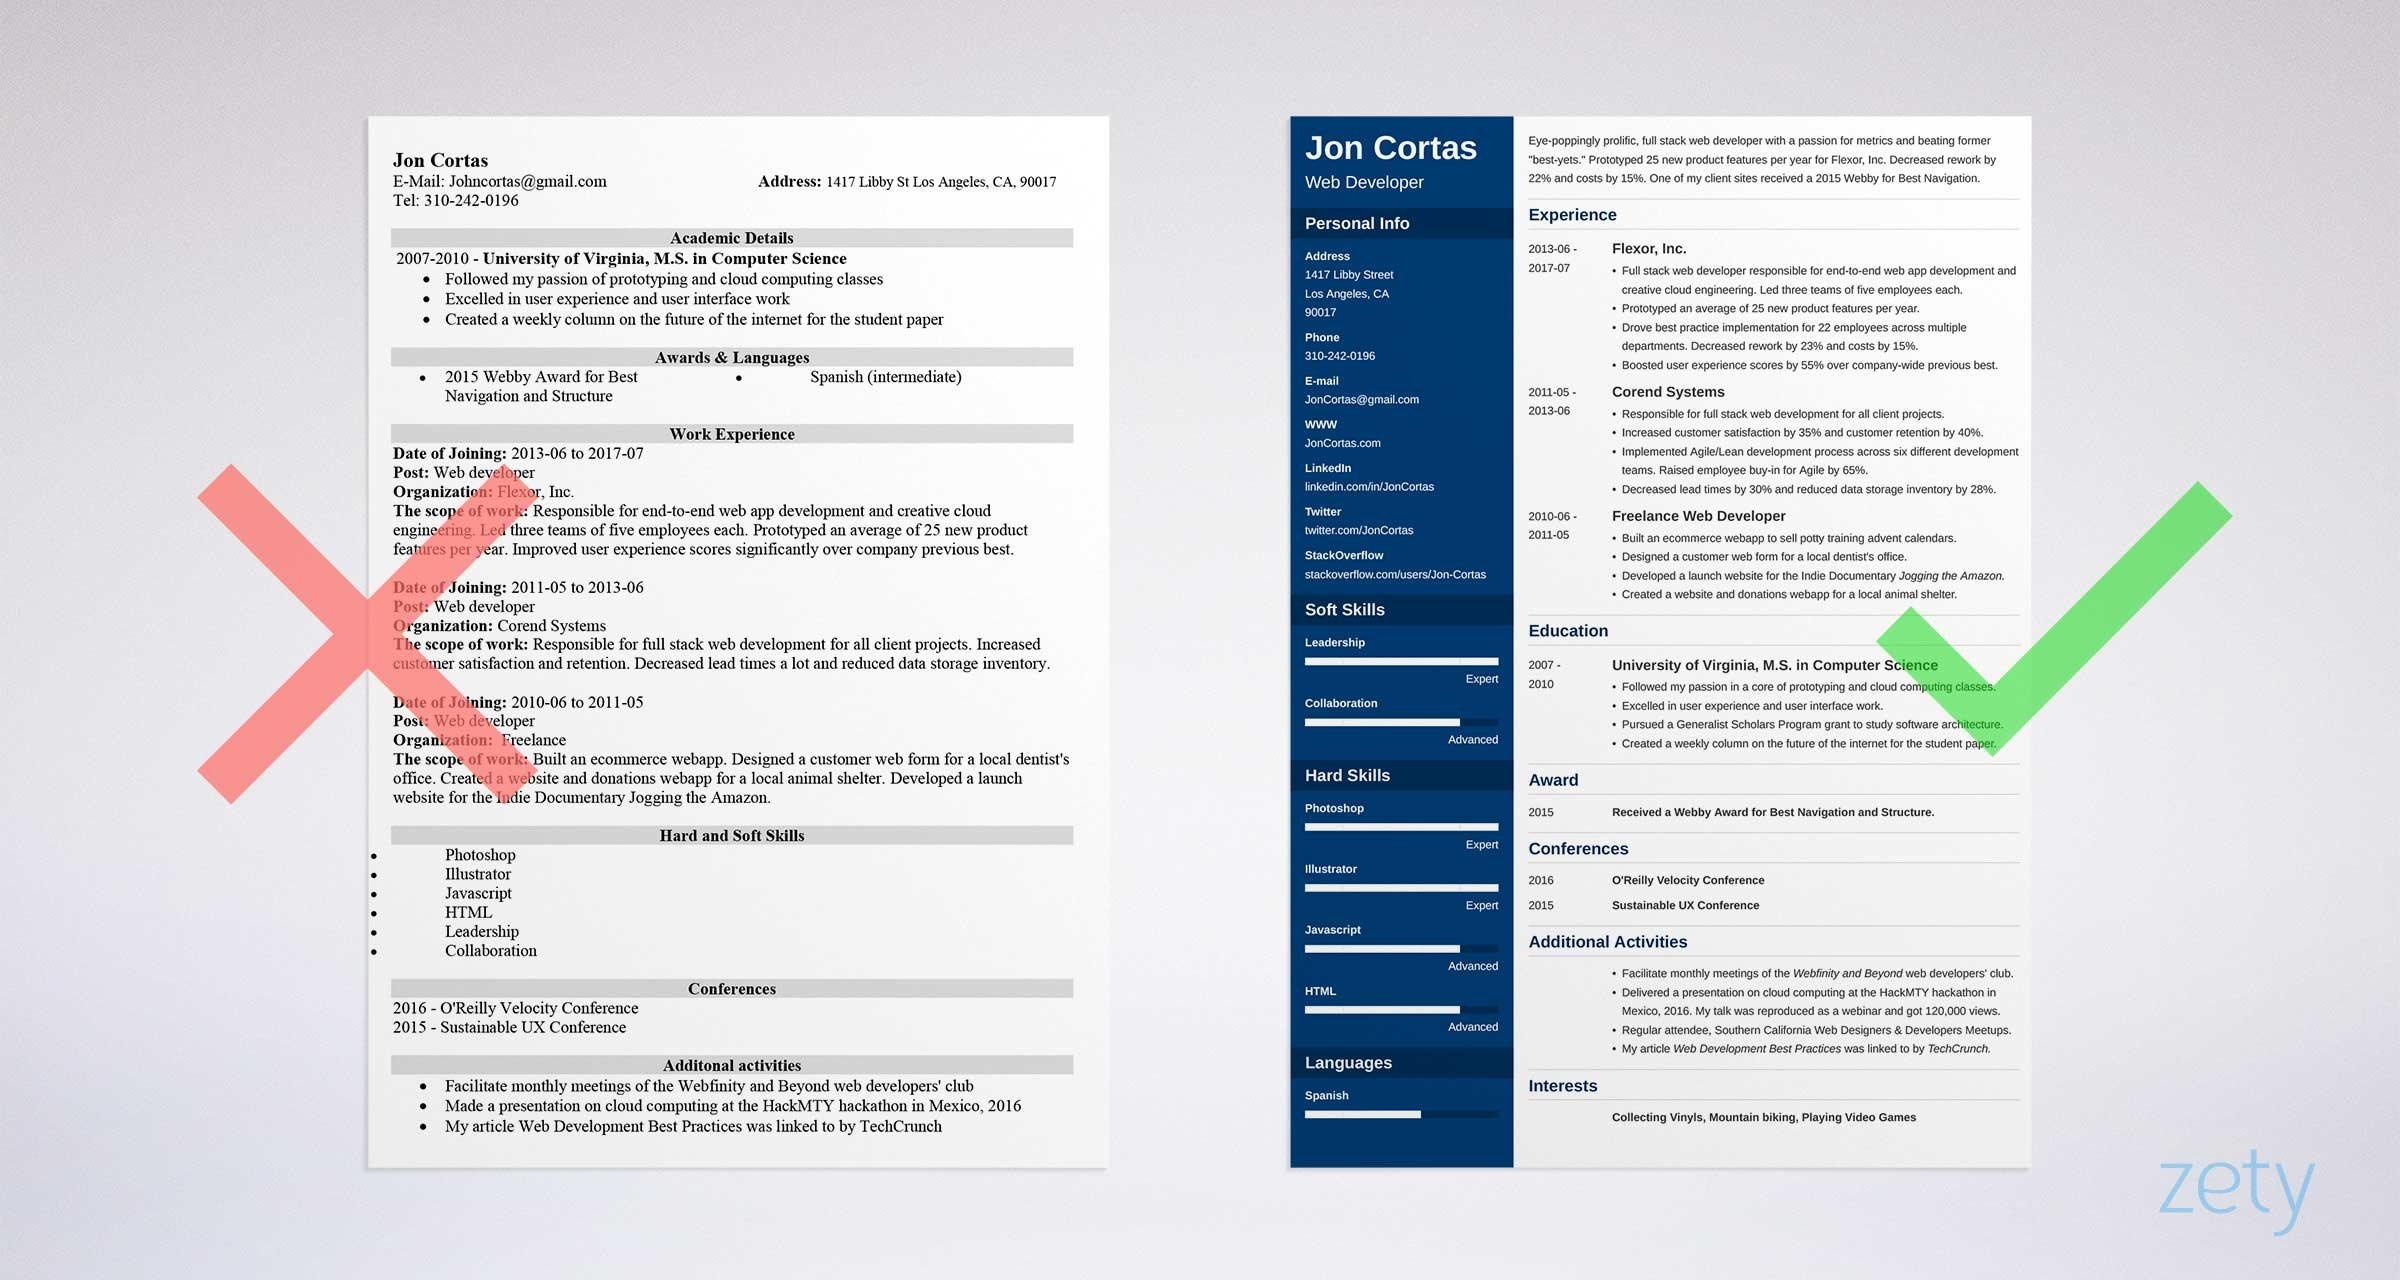 Wrong And Right Resume Examples Comparison. sample microsoft word college student resume format. goldenrod yellow a free clean word resume template. wrong and right resume examples comparison. stylish resume template for word microsoft templates resume. military to private sector resume